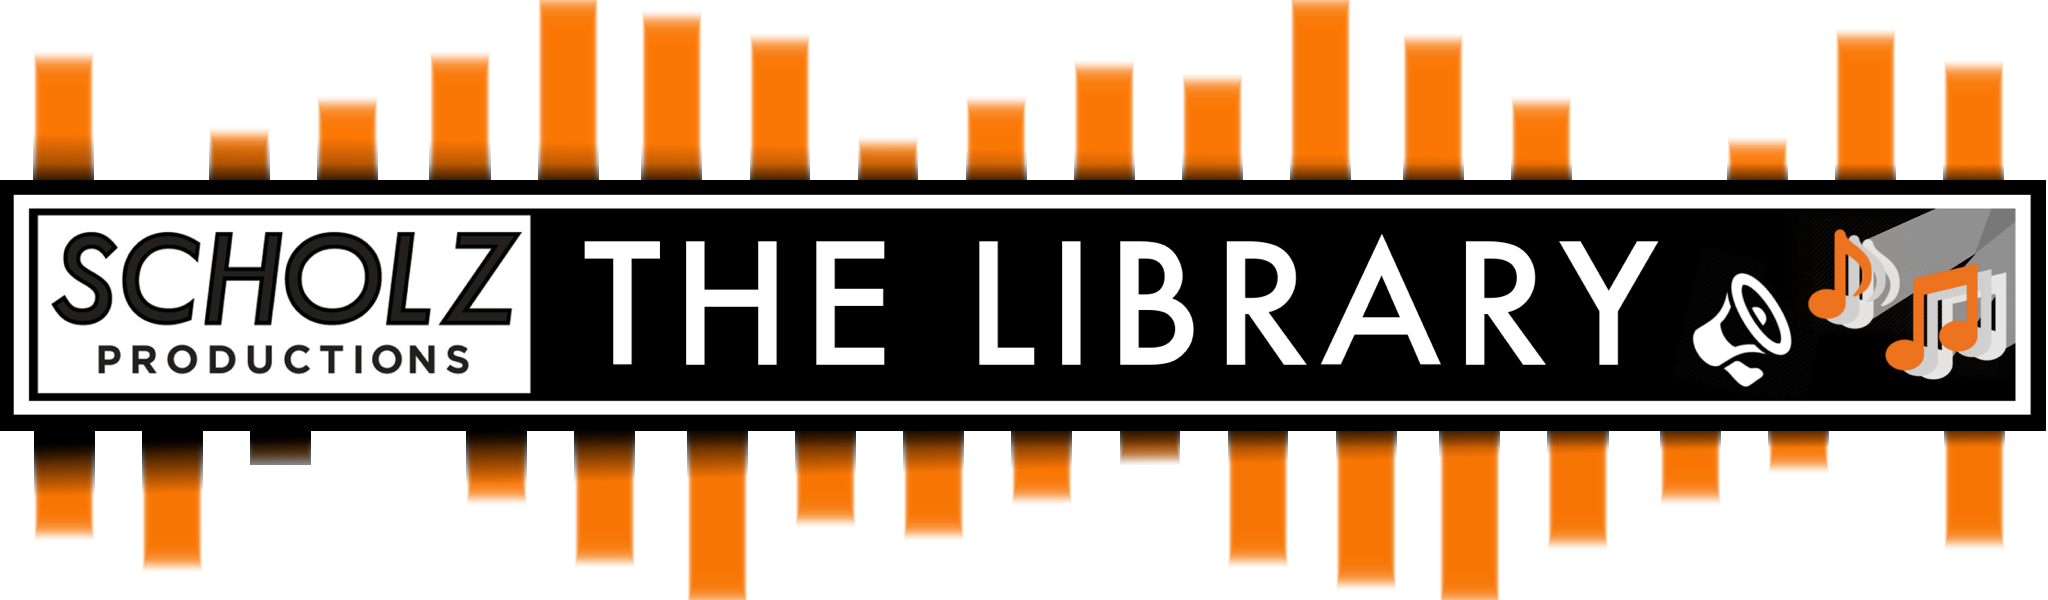 The Library.png